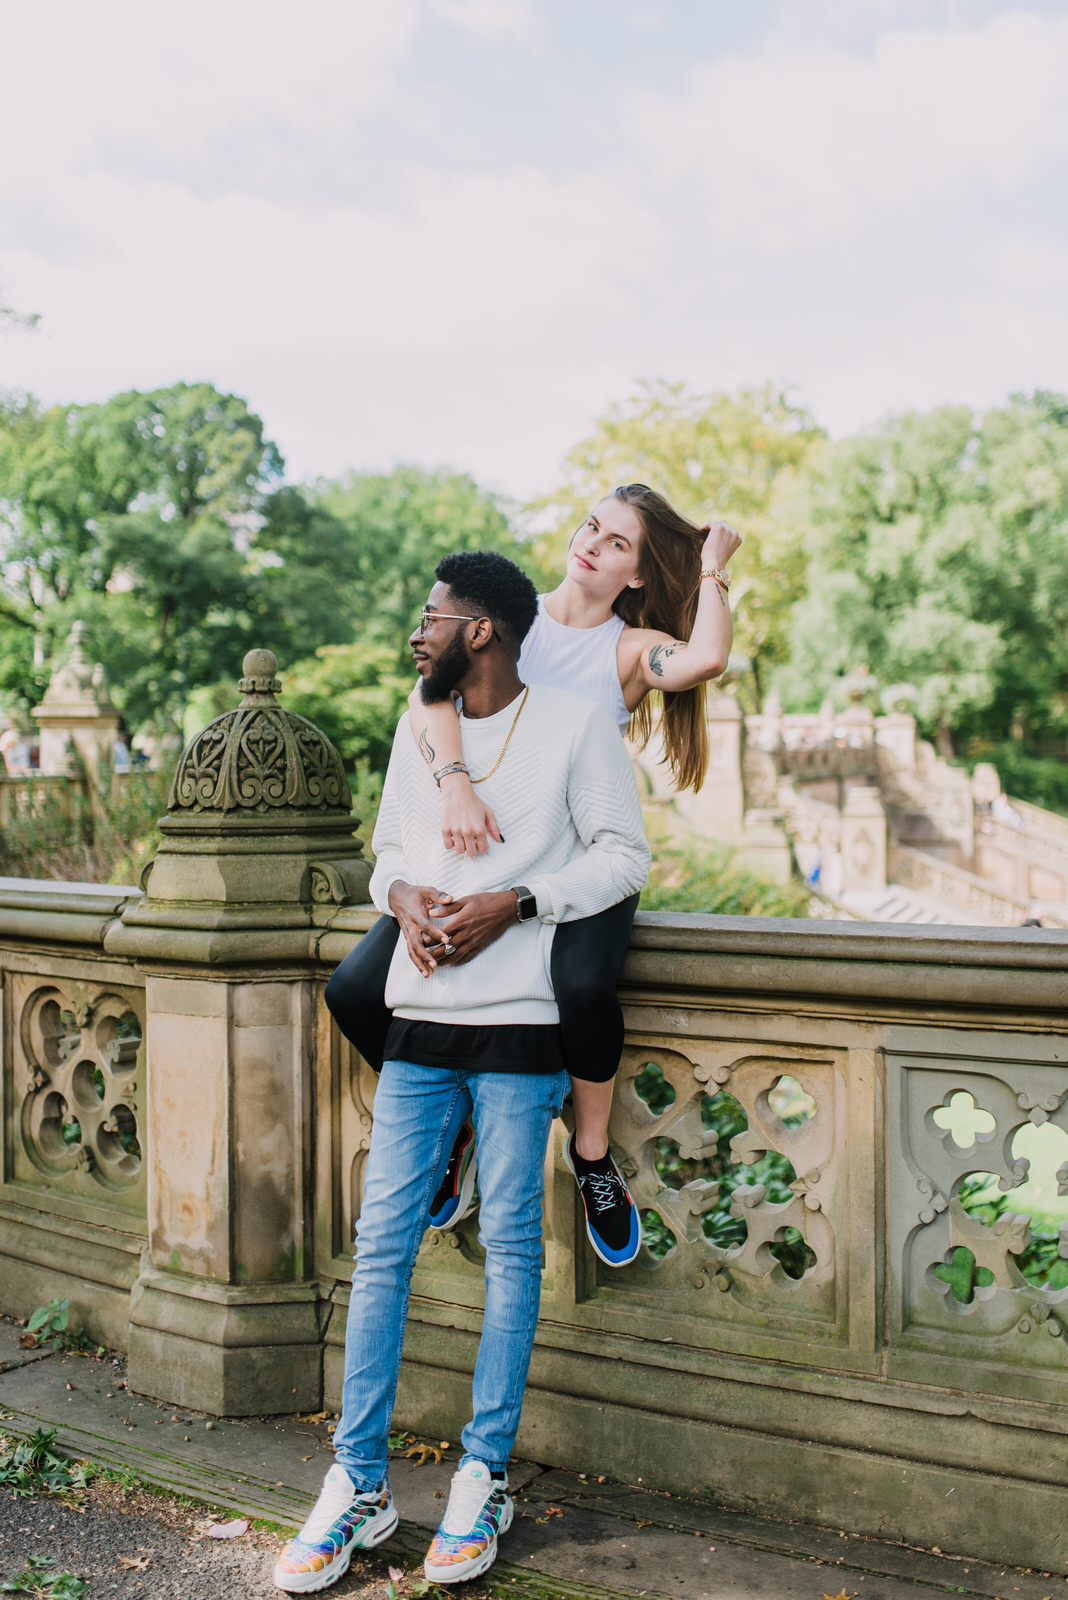 central park engagement shoot, NYC wedding photographer, NYC elopement, elopement photographer New York (24).jpg